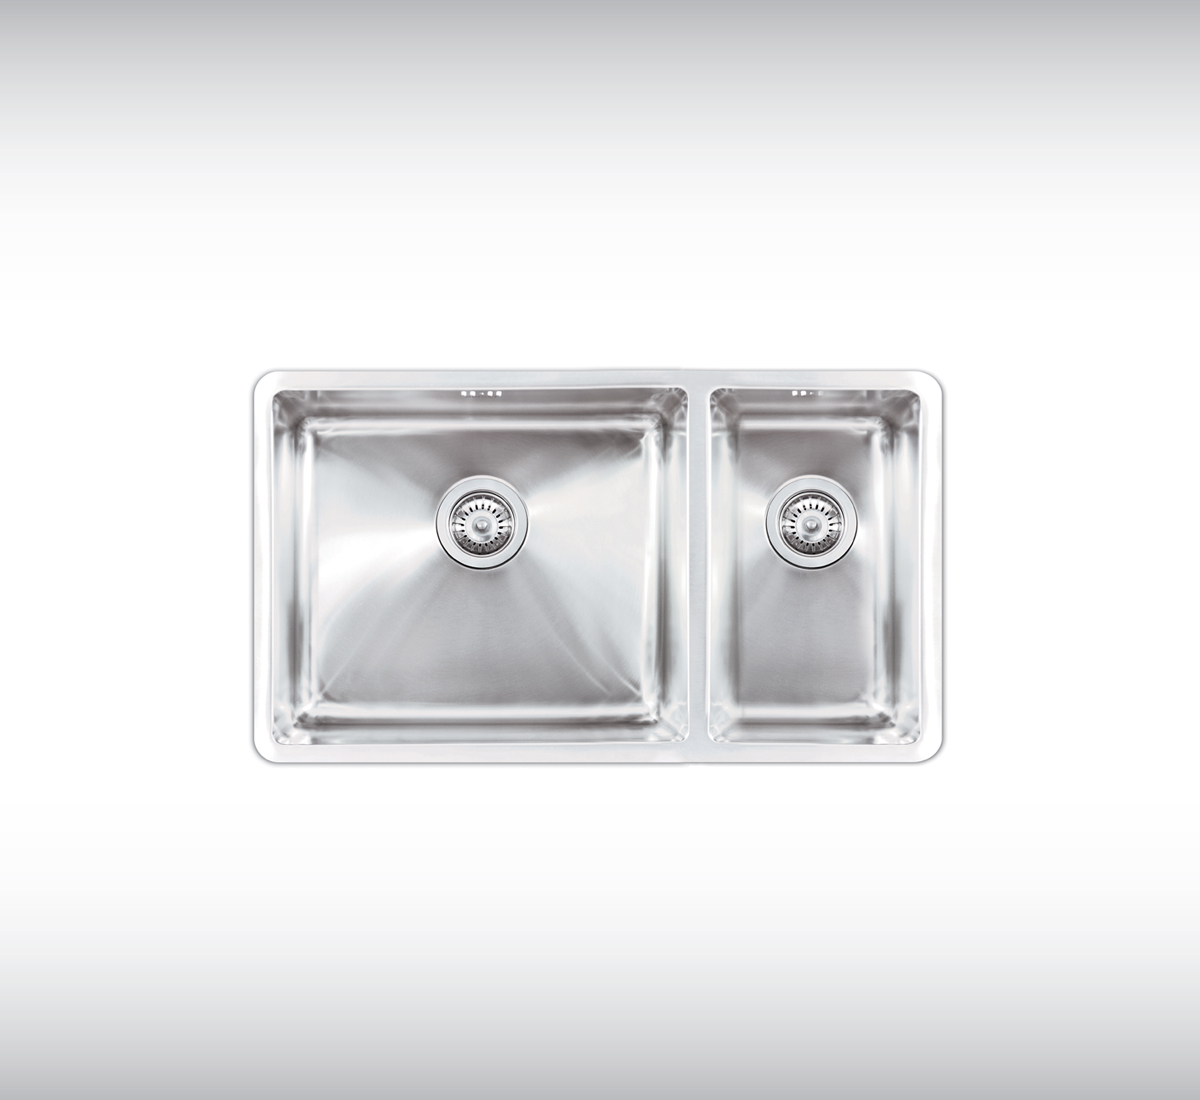 Stainless Steel Sink GINO-760L